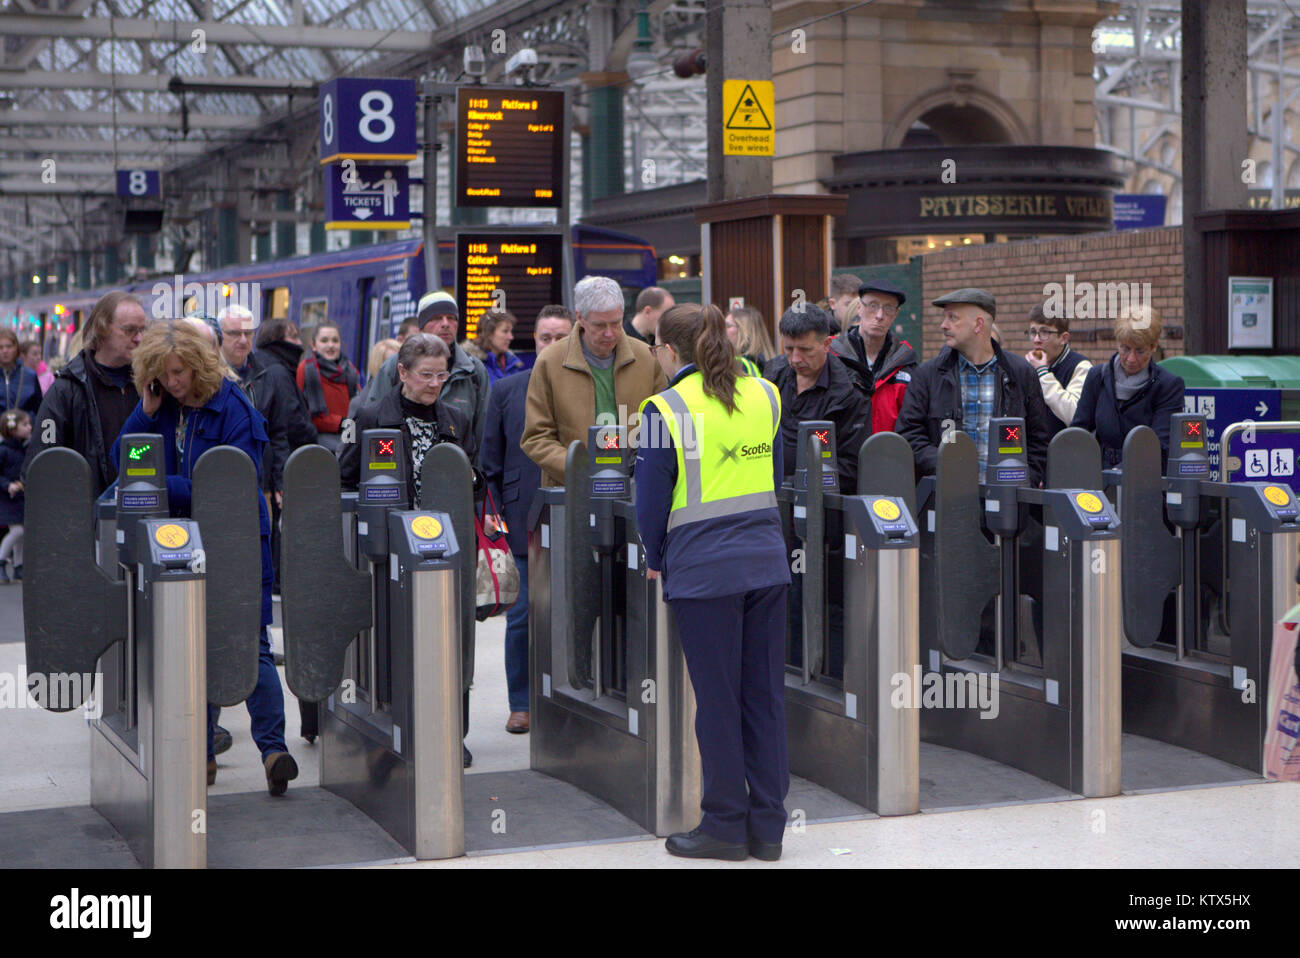 Glasgow central railway station ticket turnstiles during rush hour with queues and train staff  collecting tickets - Stock Image